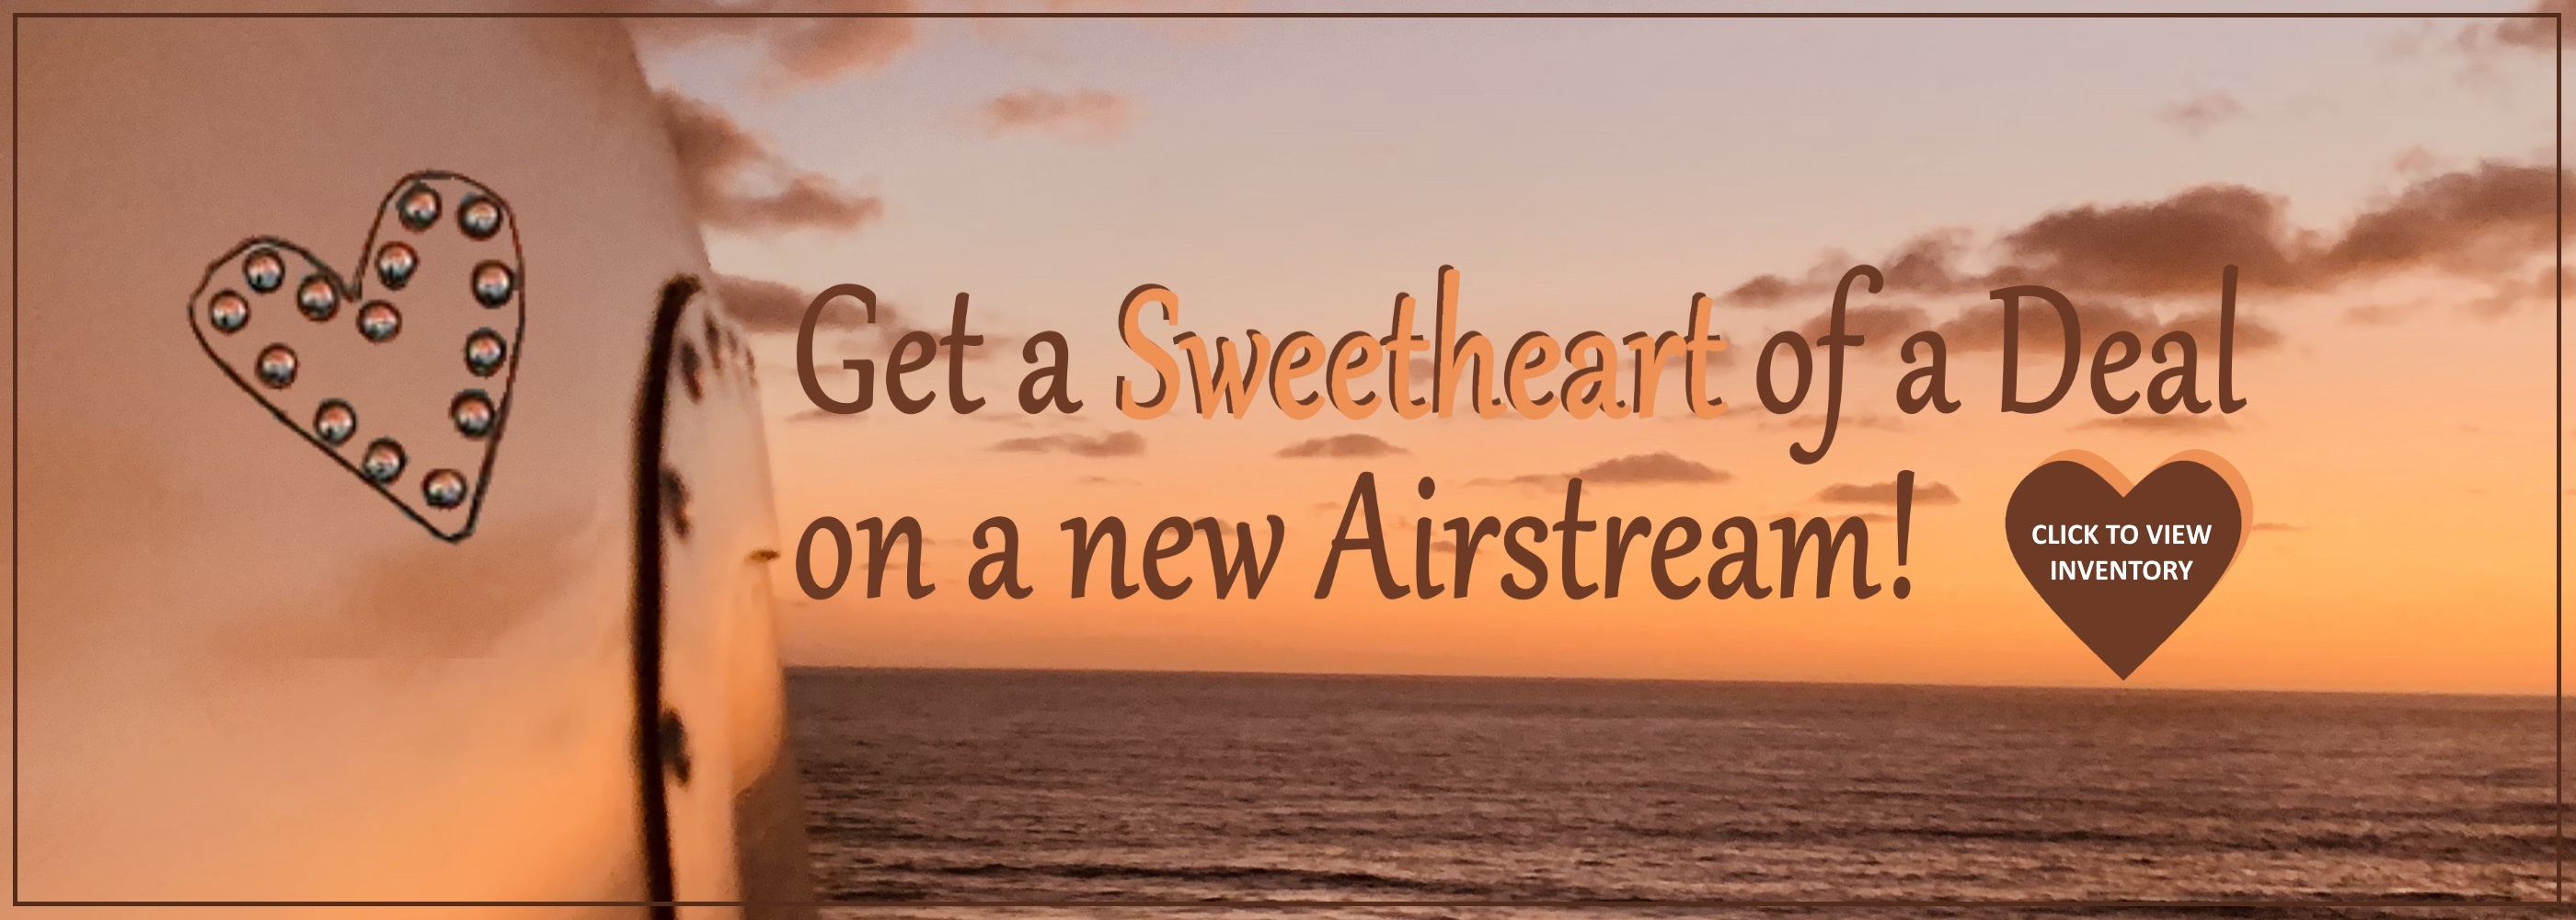 Sweetheart Deal Slider With Text